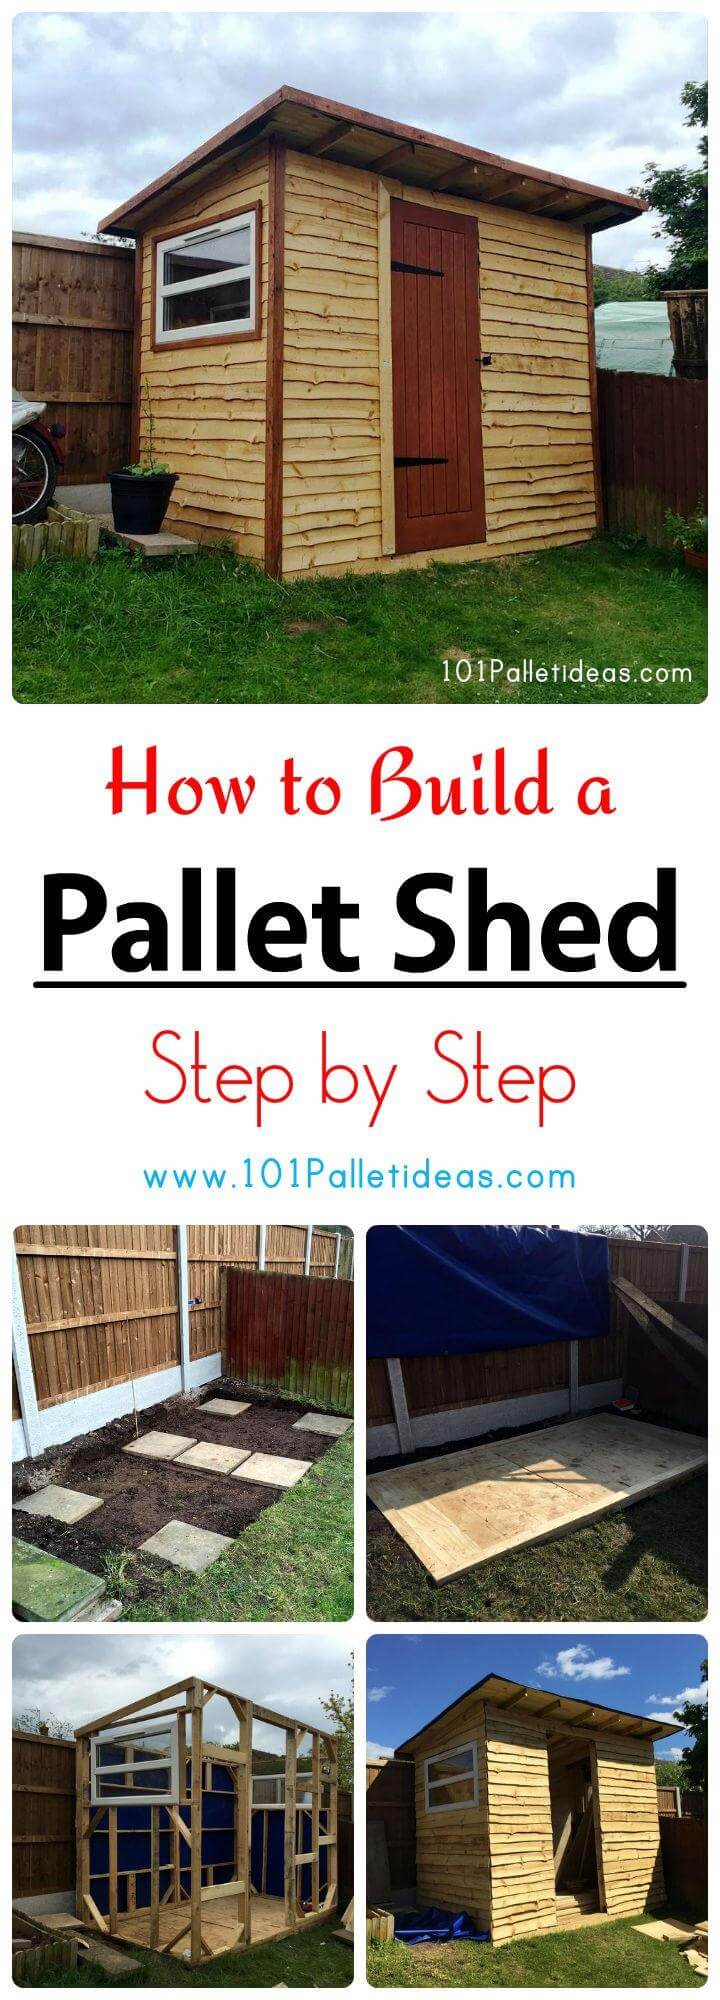 How to Build a Pallet Shed - Step by Step